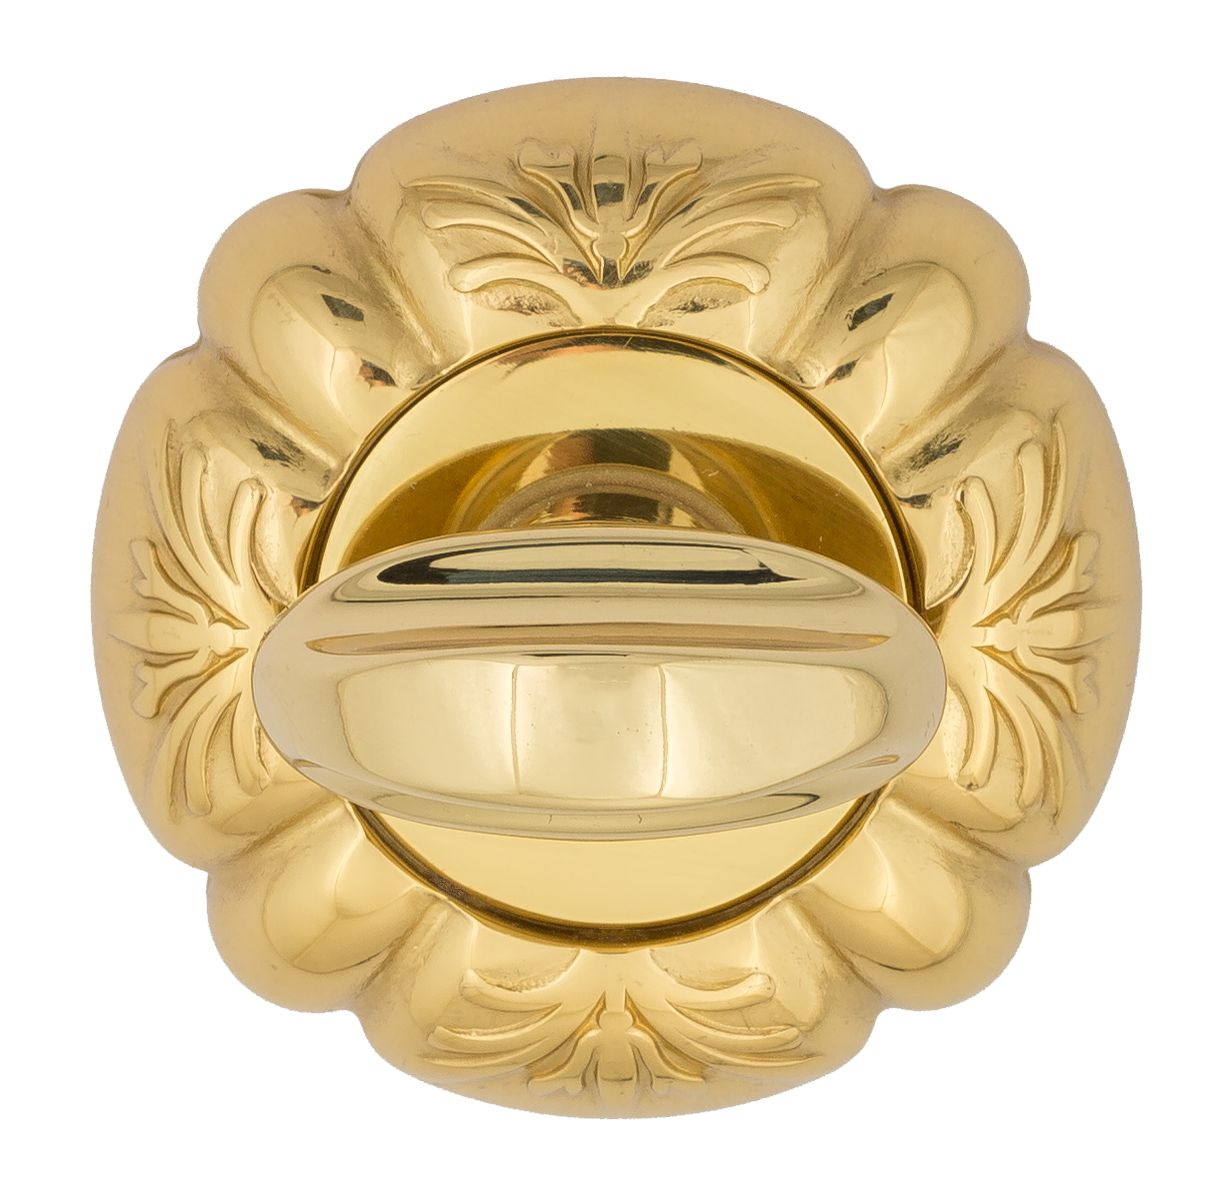 Bathroom Turn & Release Venezia WC-2 D5 Polished Brass